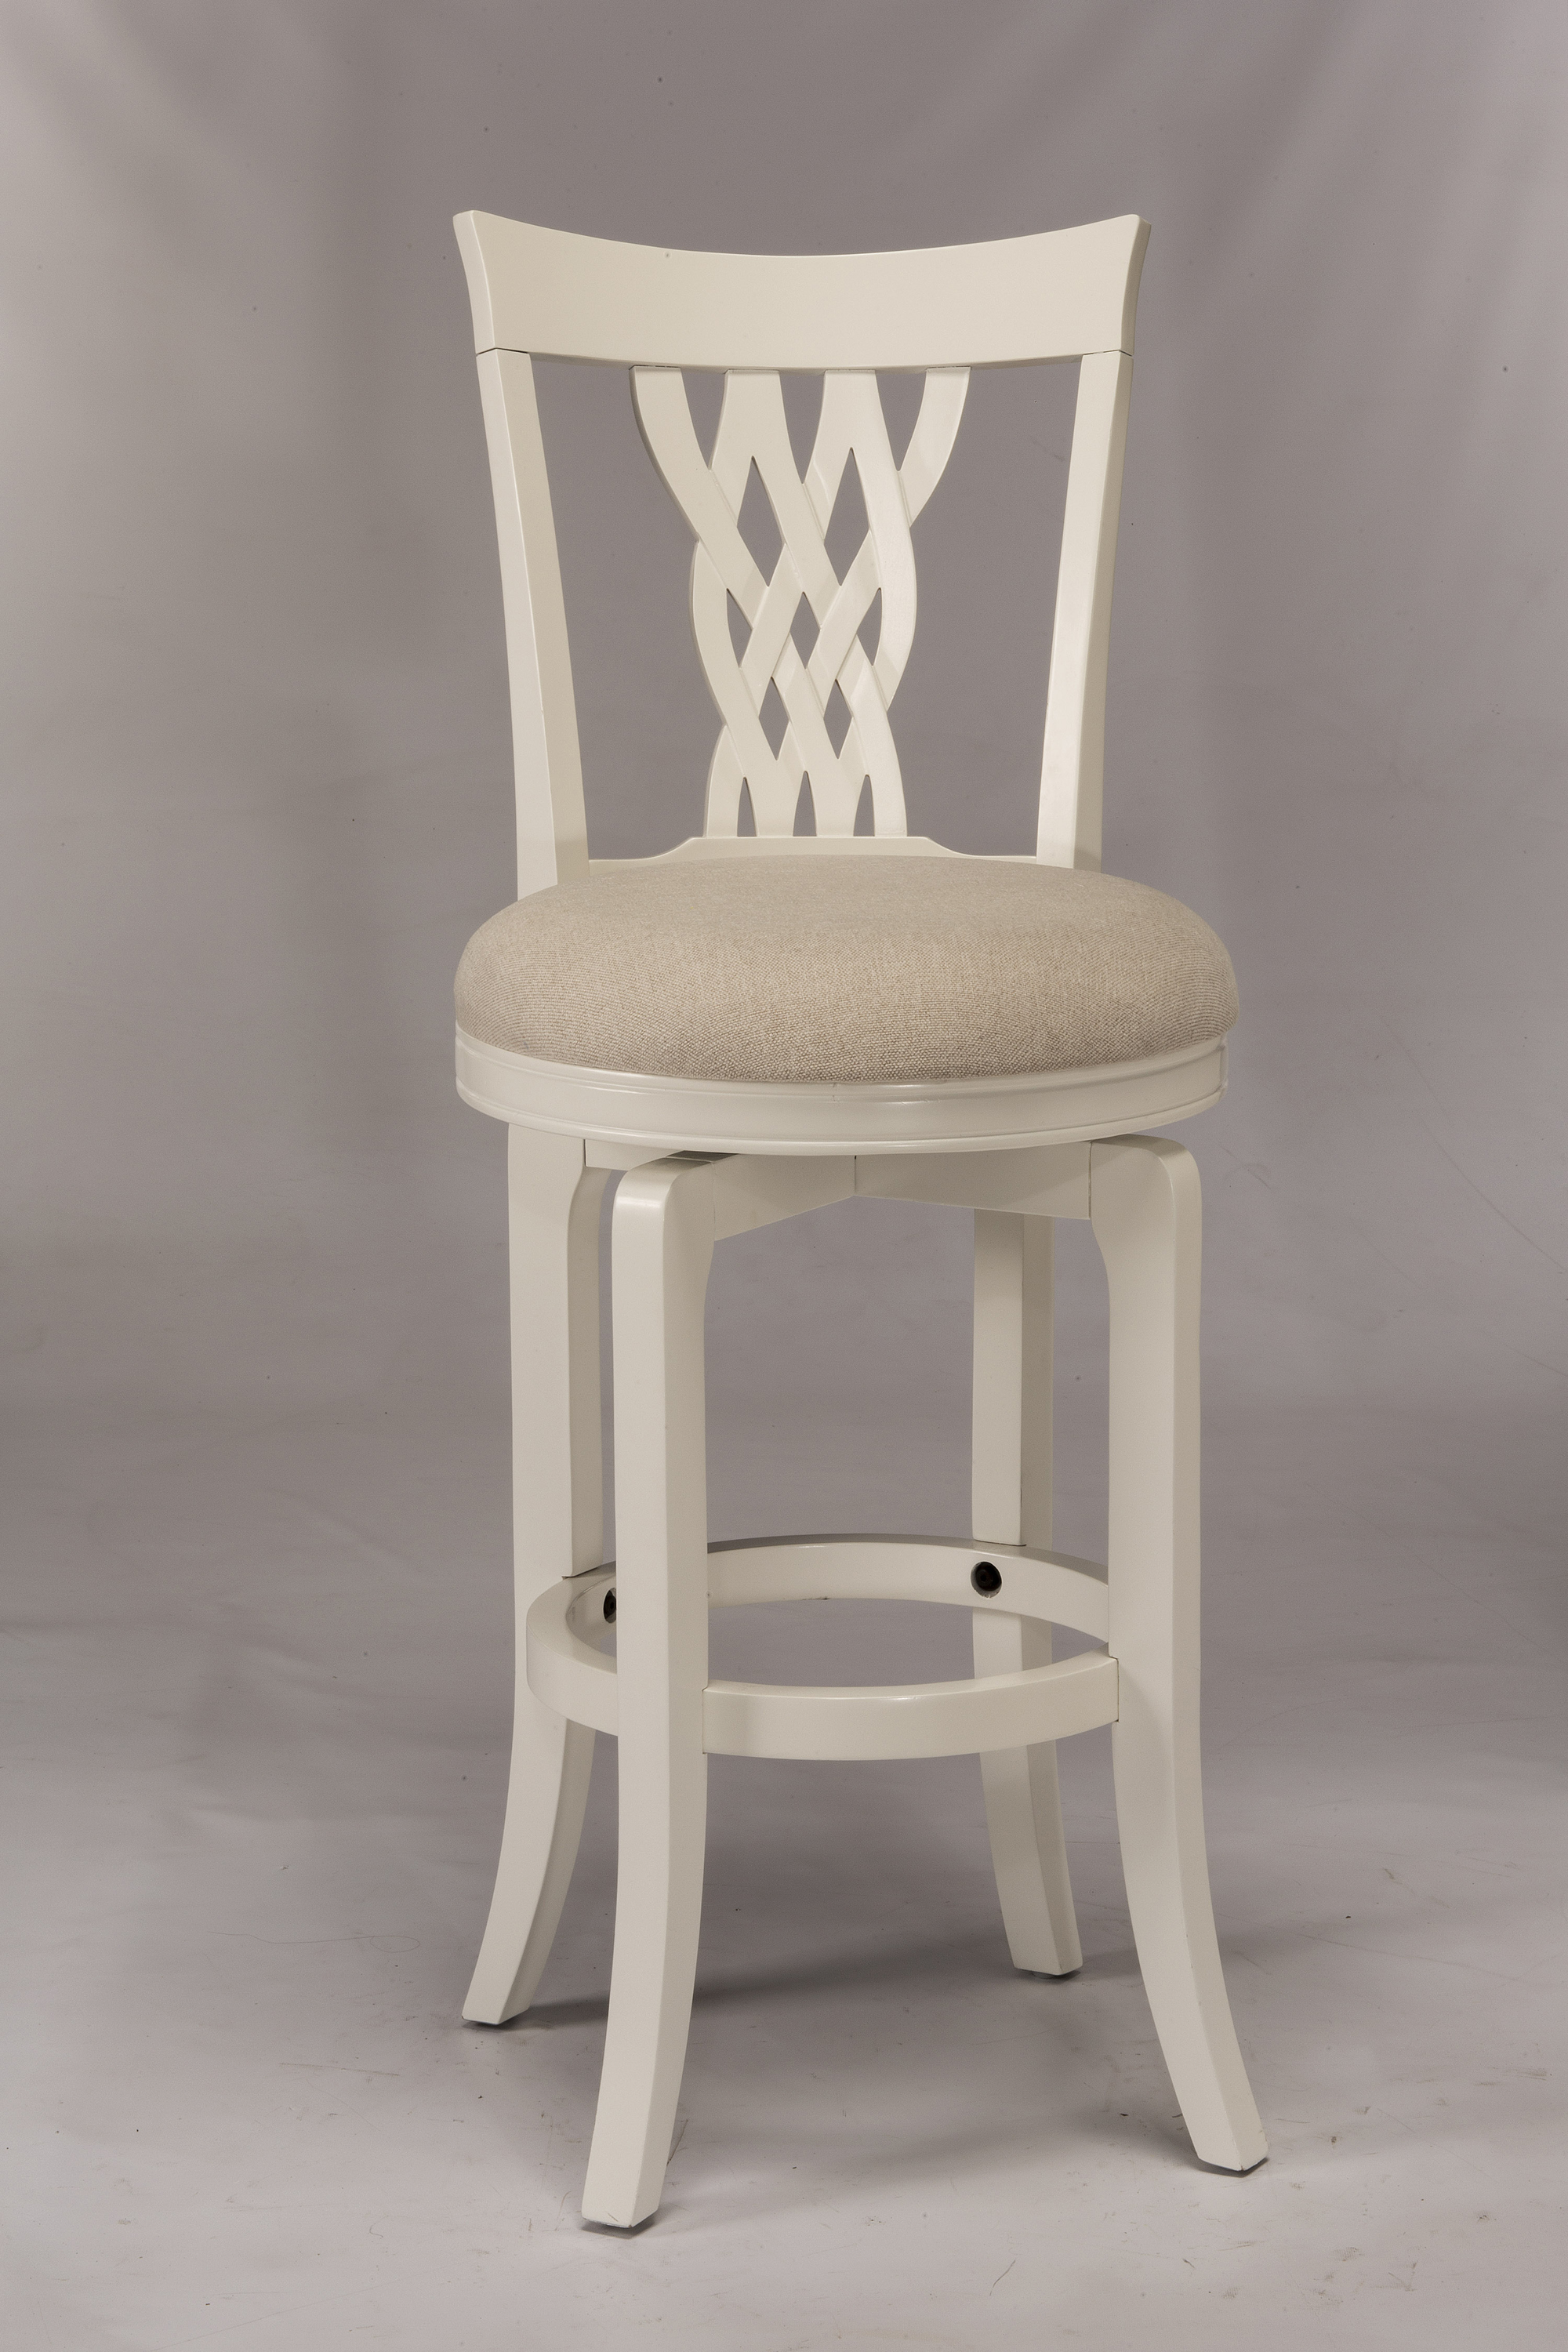 Wood Stools Swivel Counter Stool by Hillsdale at Johnny Janosik